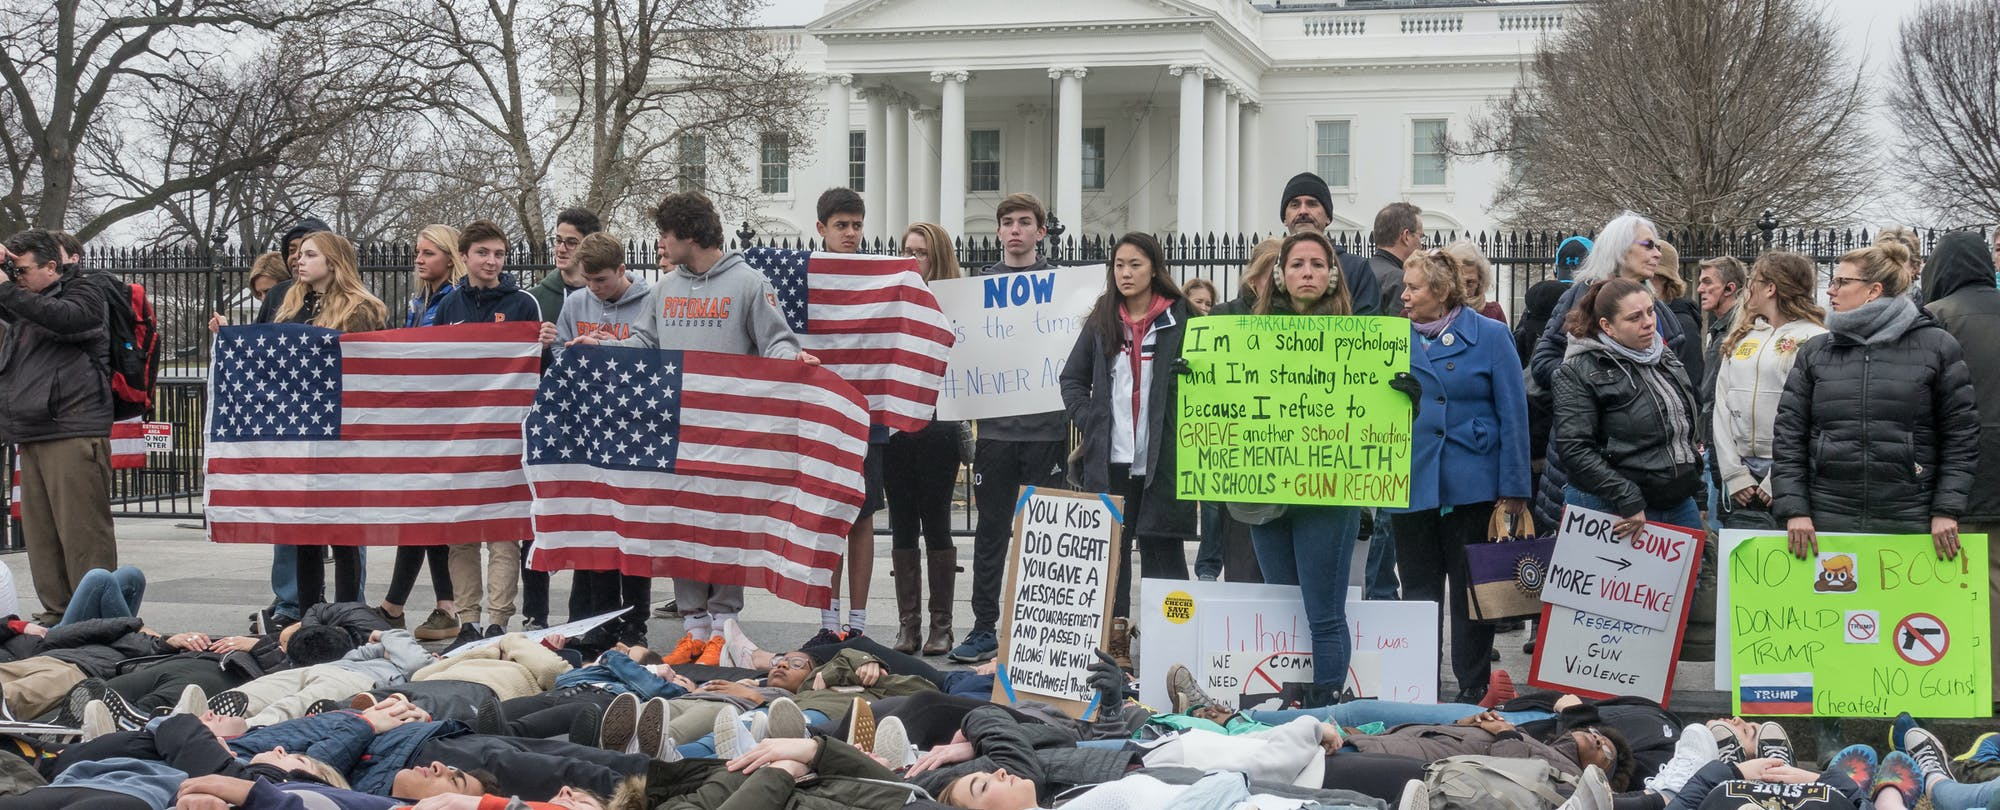 #NeverAgain: A Call to Action on Gun Violence From Education Leaders